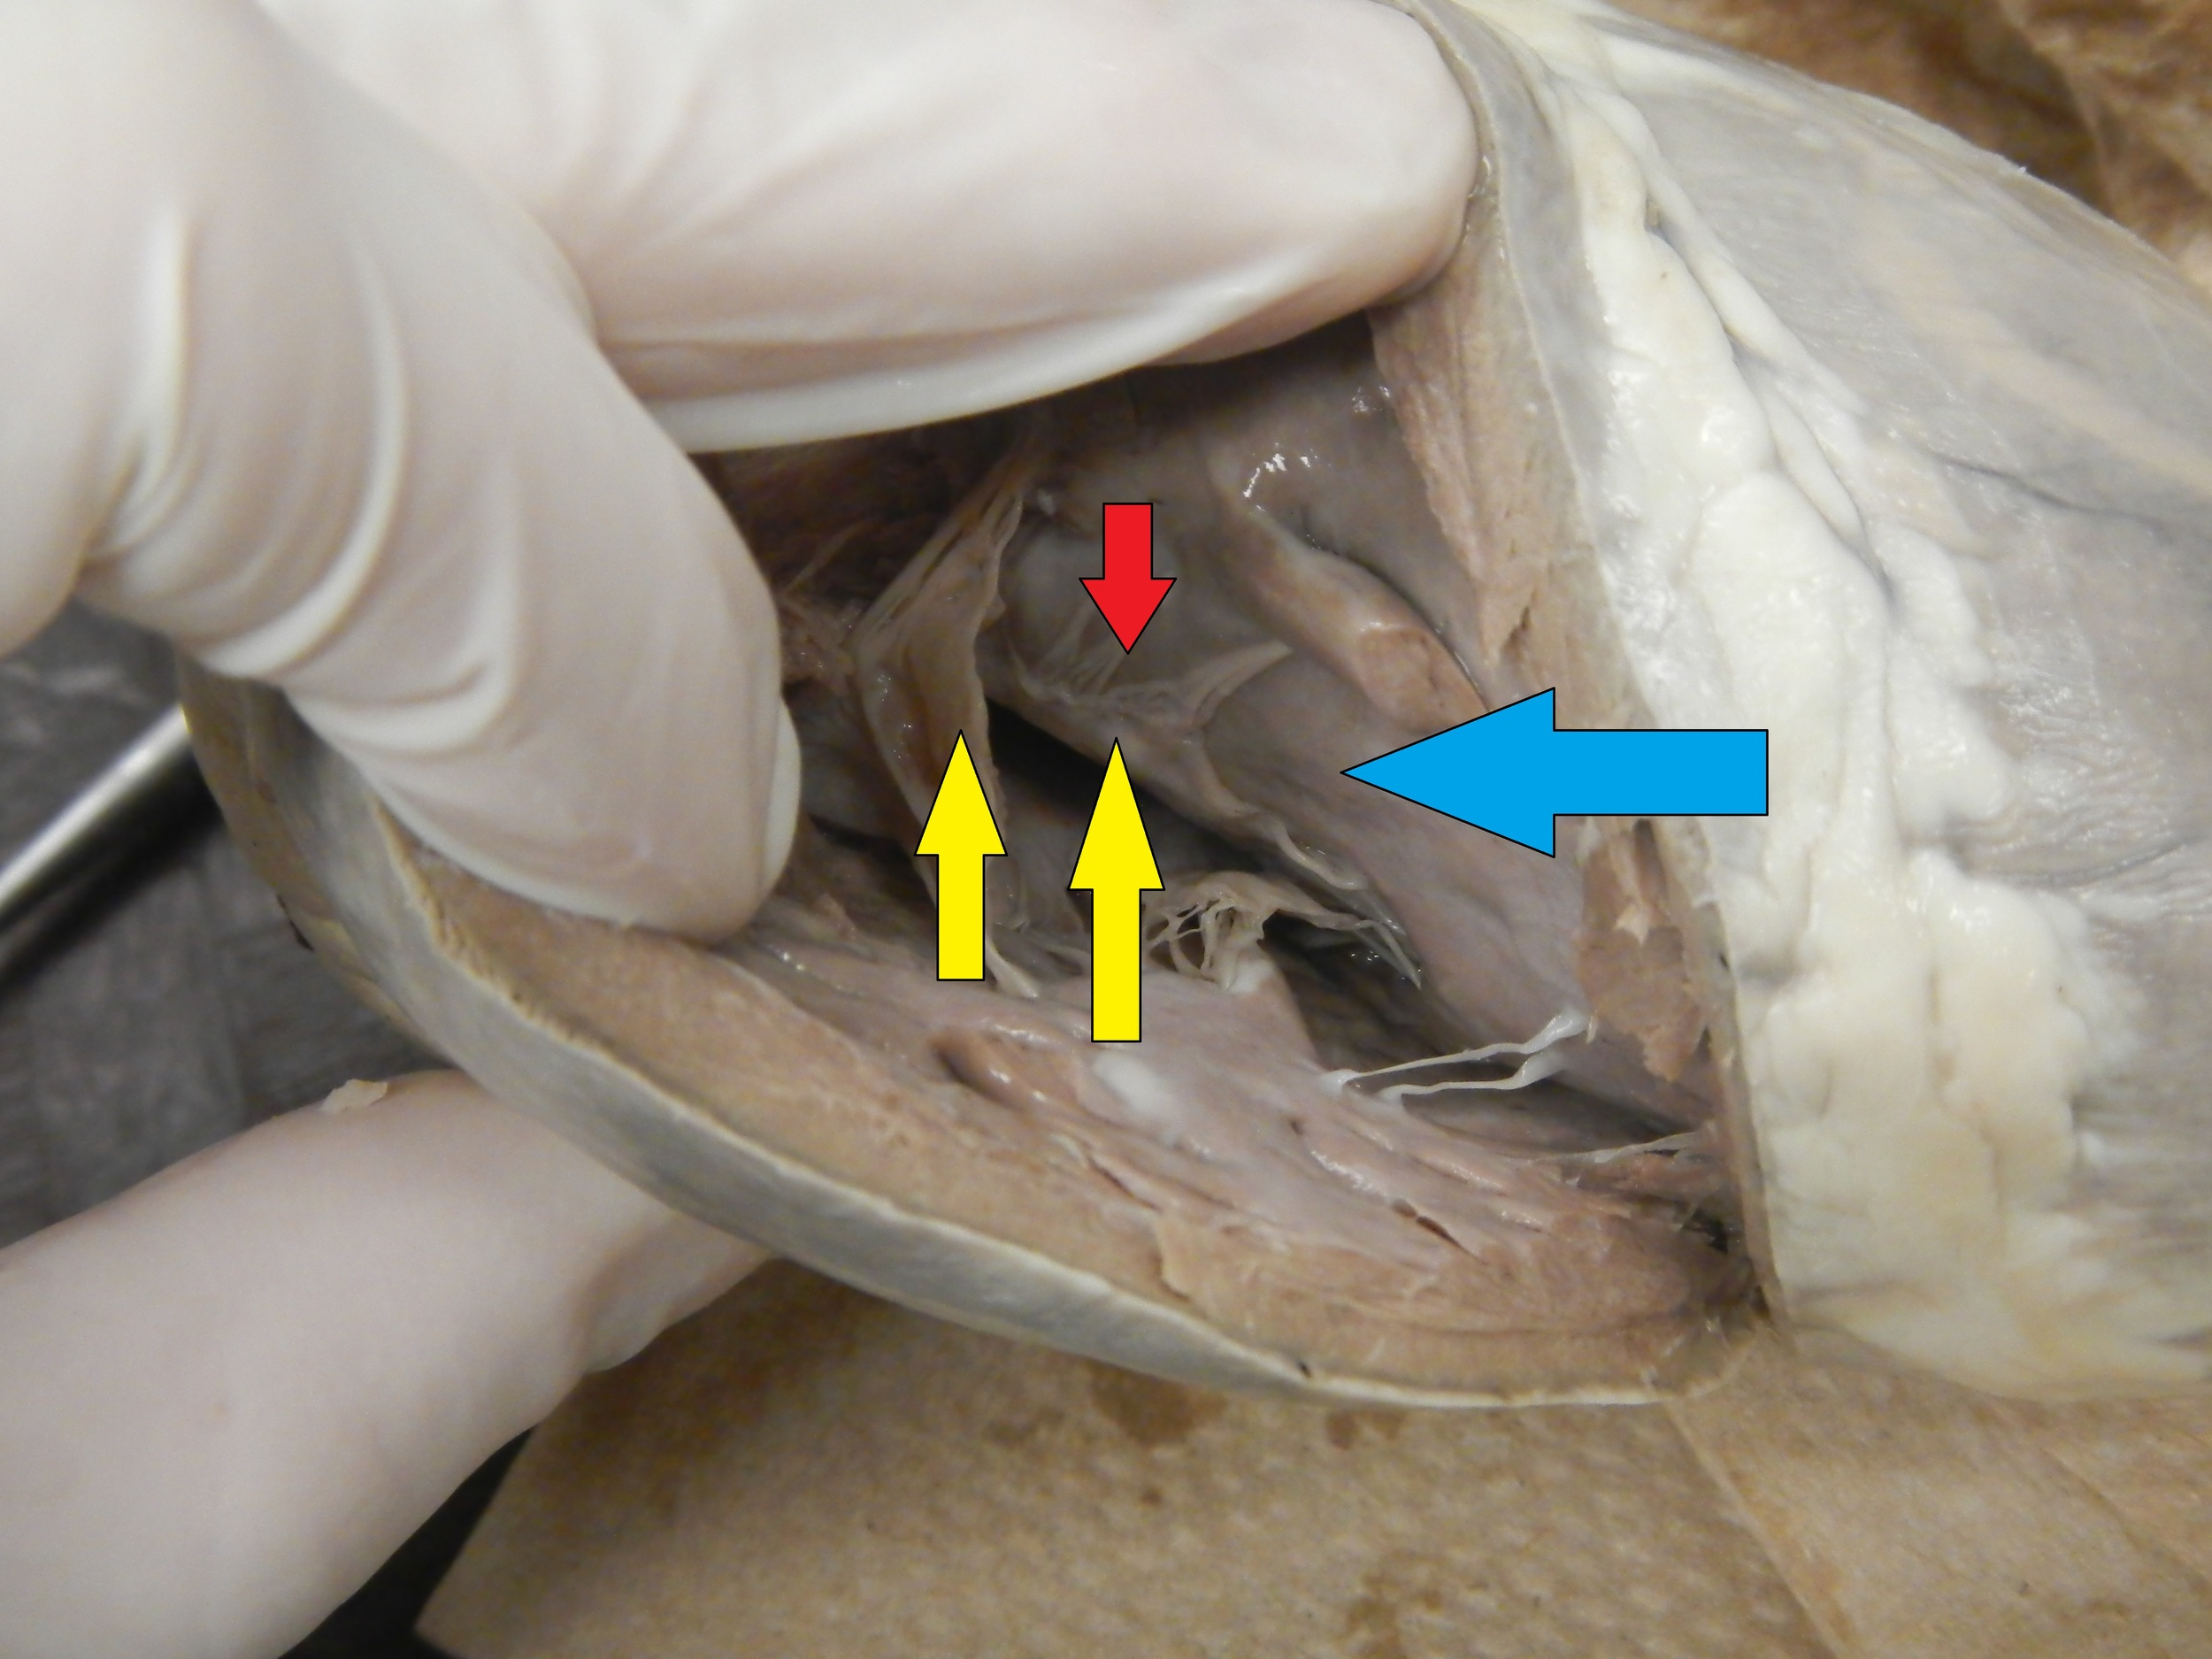 Blue - Right Ventricle  Red - Chordae Tendineae  Yellow - Atrioventricular Valve - Tricuspid (Will not be tested on)